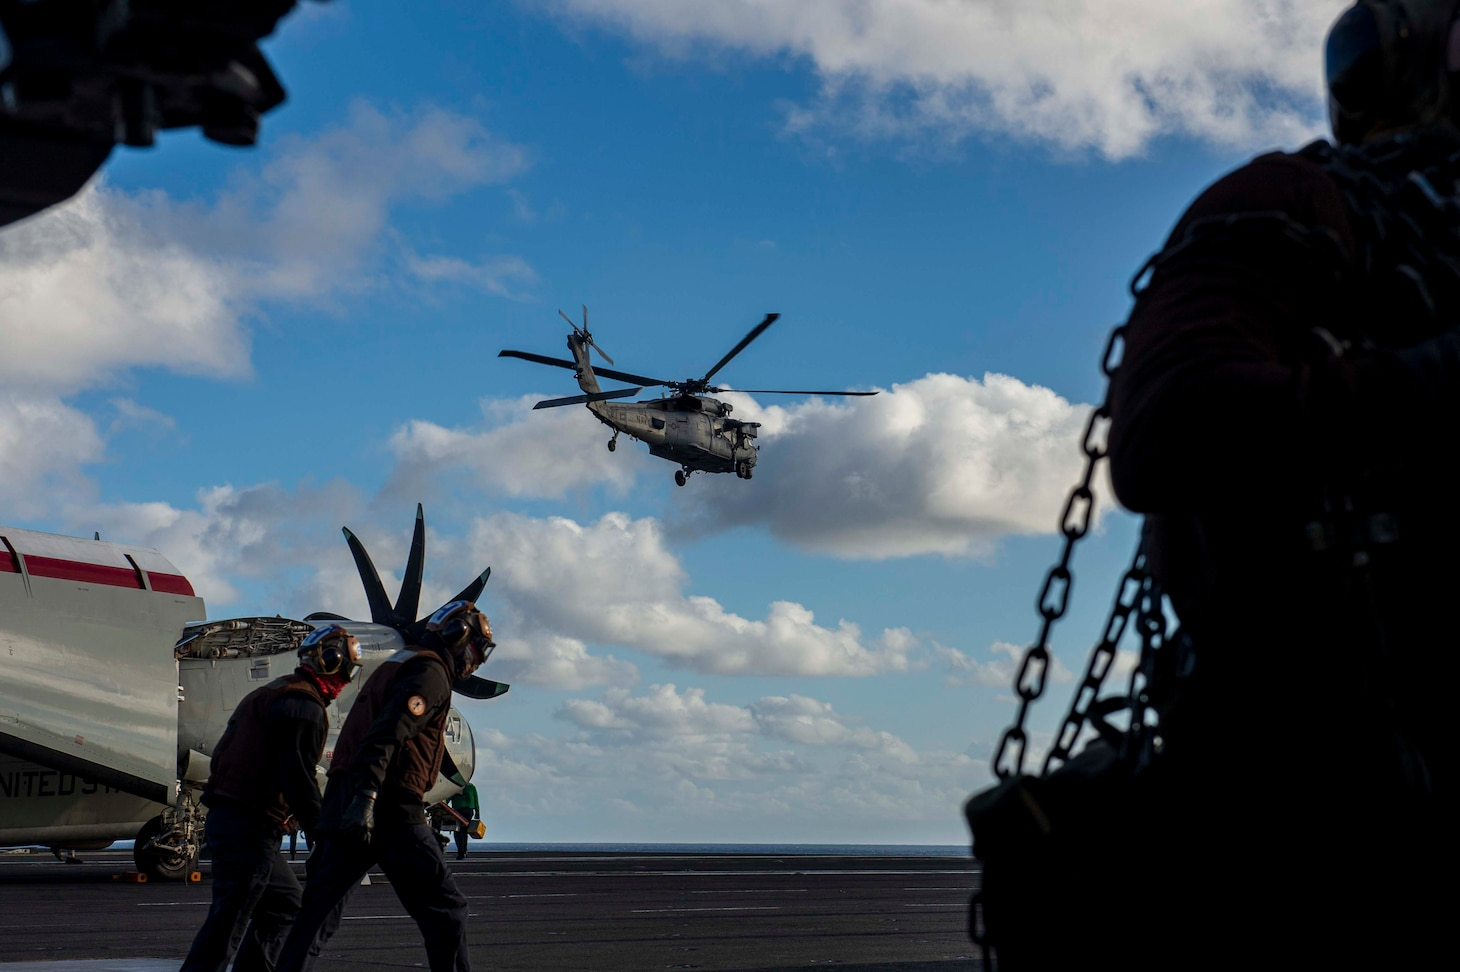 """210228-N-OB471-1016 ATLANTIC OCEAN (Feb. 28, 2021) An MH-60S Sea Hawk, attached to the """"Dusty Dogs"""" of Helicopter Sea Combat Squadron (HSC) 7, takes off from the flight deck aboard the Nimitz-class aircraft carrier USS Dwight D. Eisenhower (CVN 69), in the Atlantic Ocean, February 28, 2021. Ike is on a routine deployment supporting U.S. national security interests in Europe and increasing theater cooperation and forward naval presence in the U.S. 6th fleet area of operations. (U.S. Navy photo by Mass Communication Specialist Seaman Jacob Hilgendorf/Released)"""